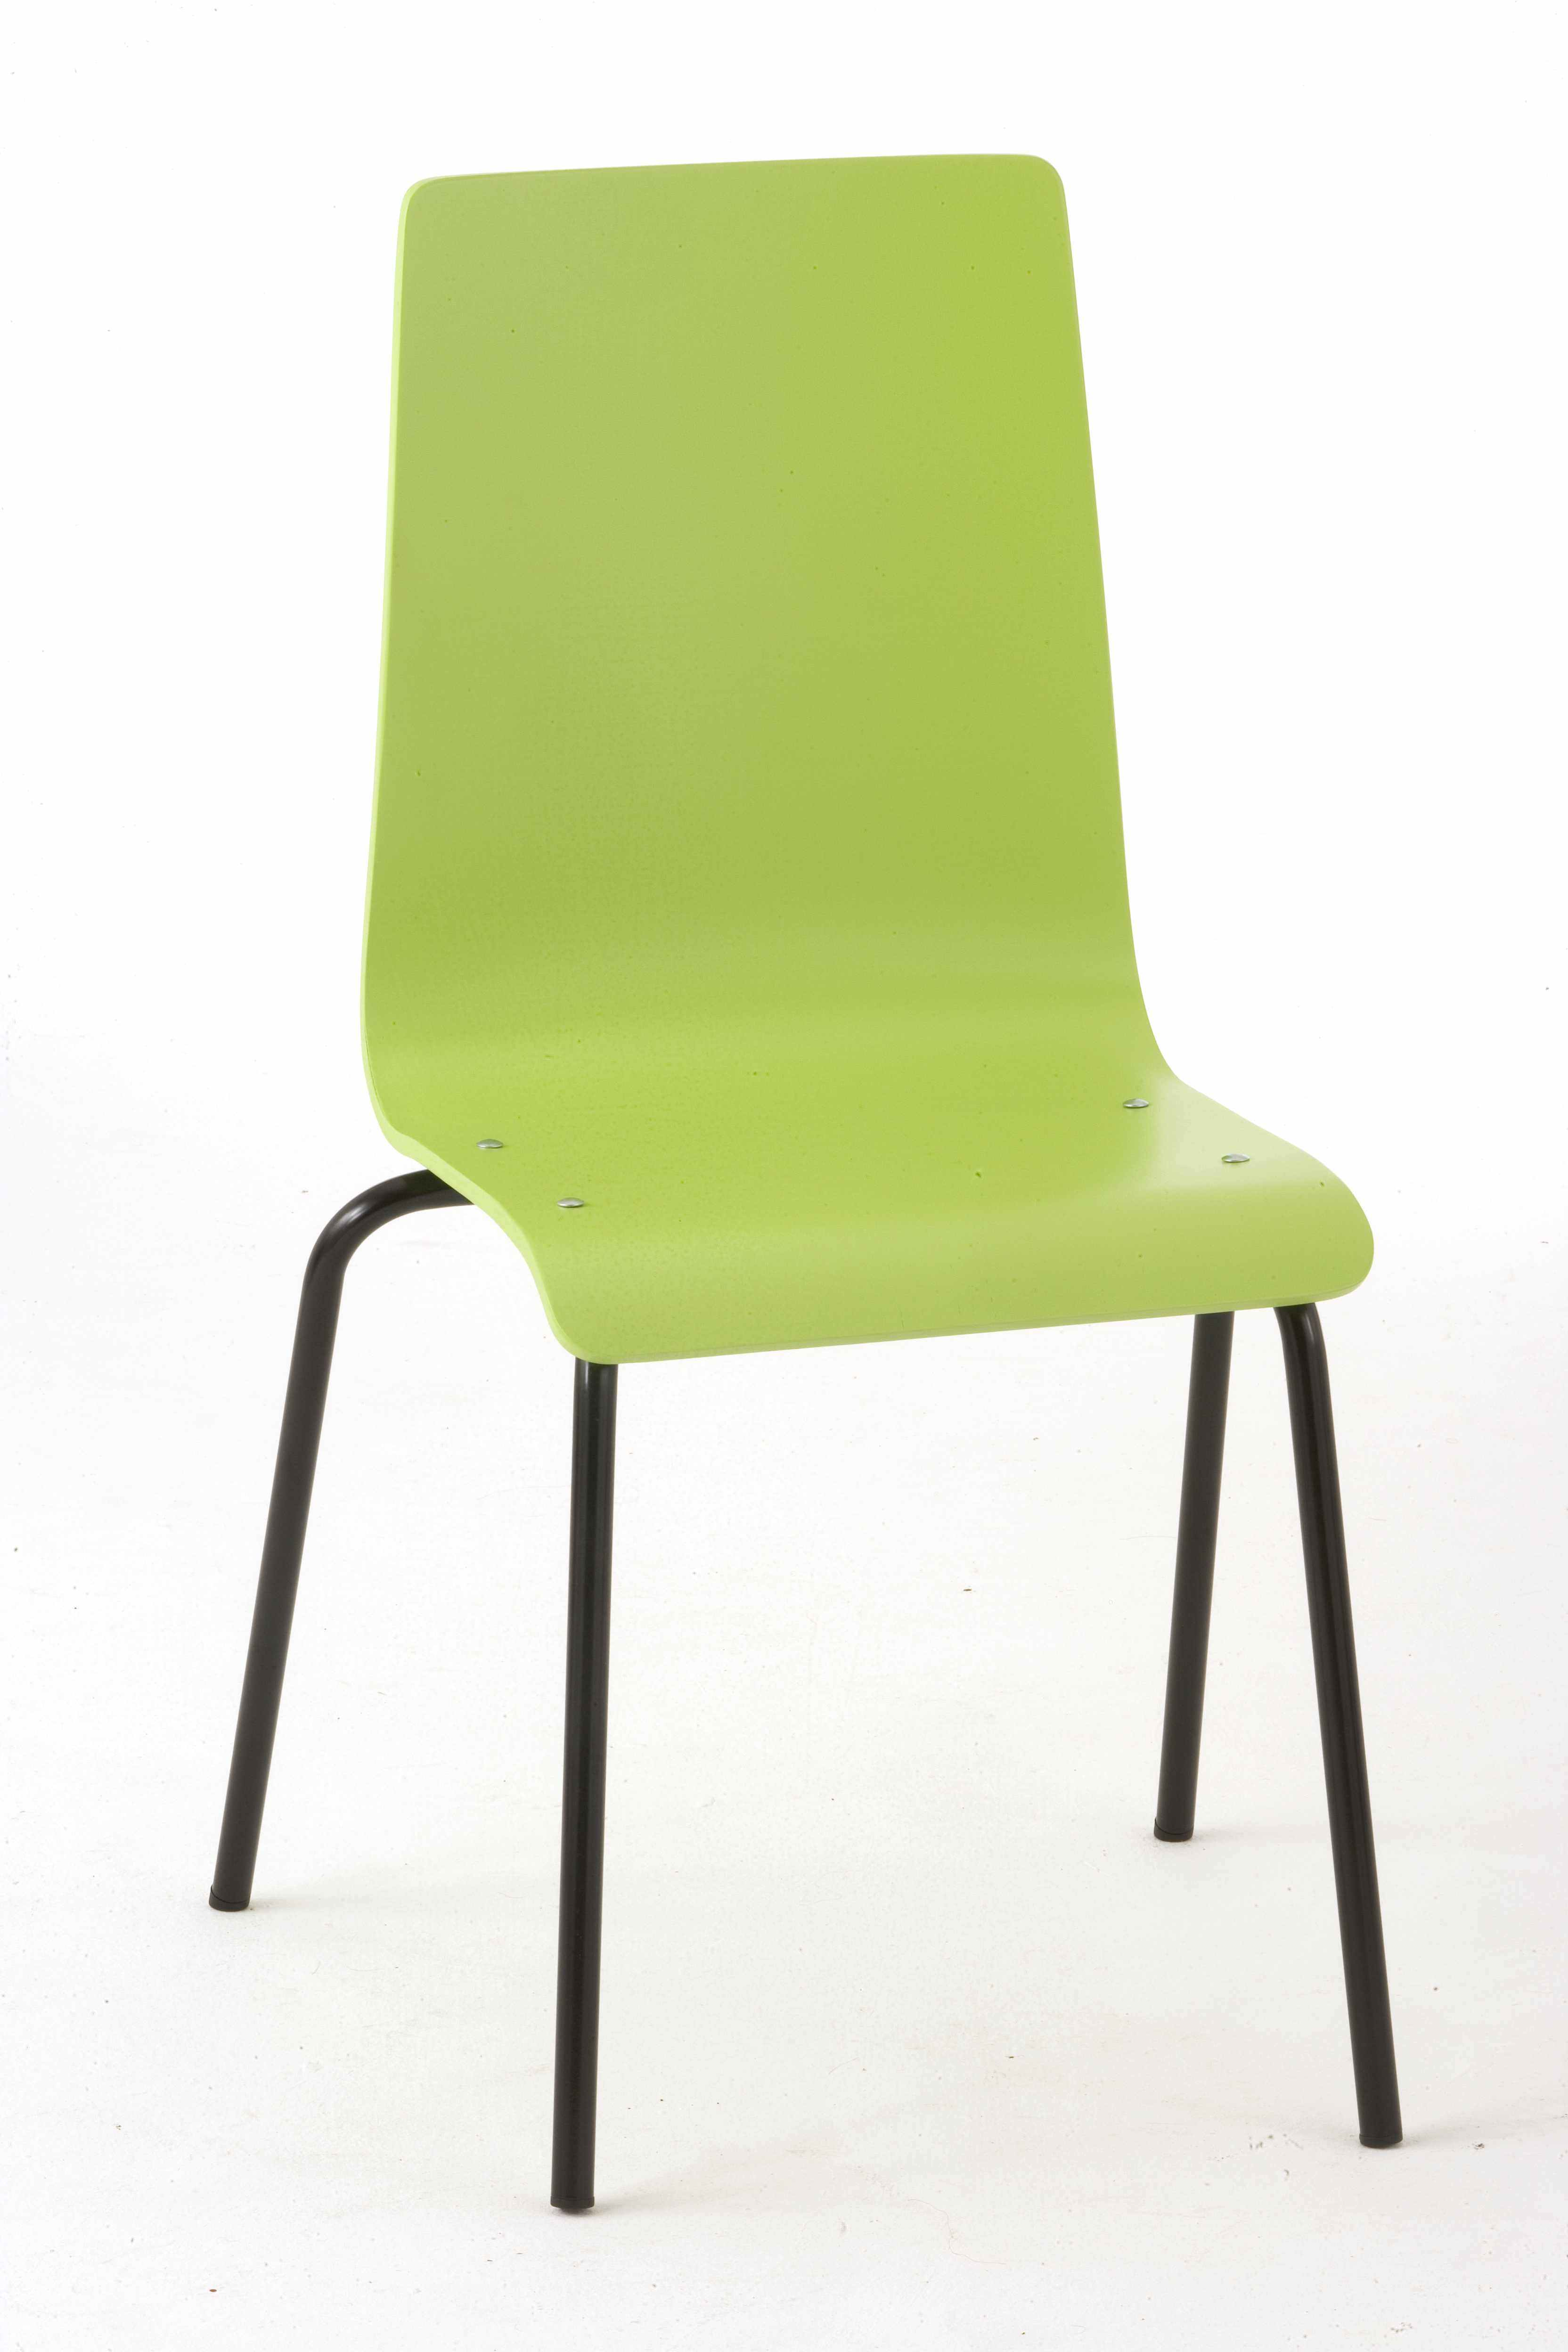 Chaise coque saxo mobilier goz for Chaise coque